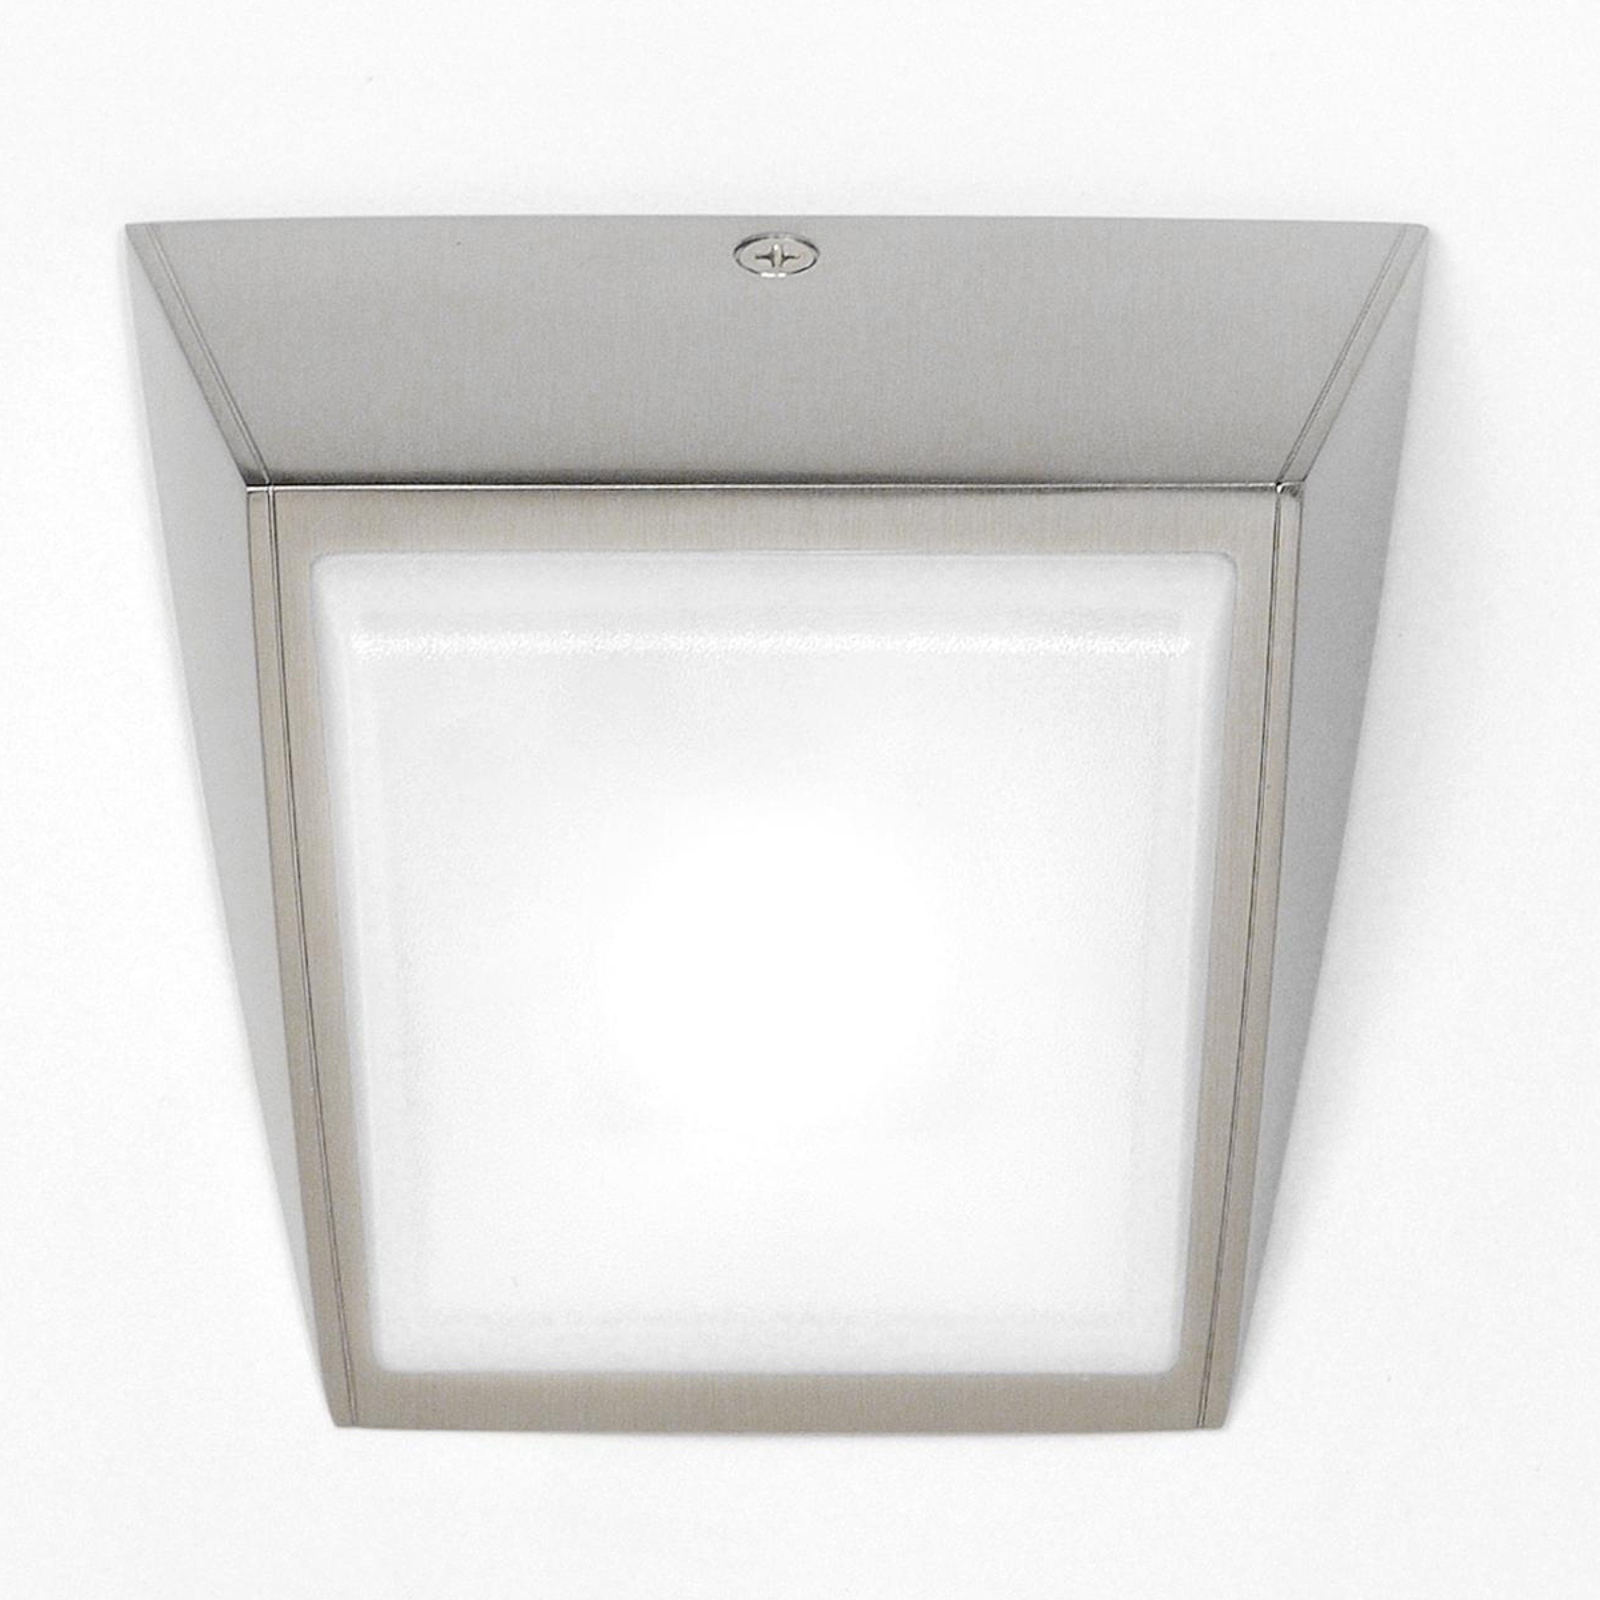 Odile - LED wall light with warm white LEDs_6708113_1